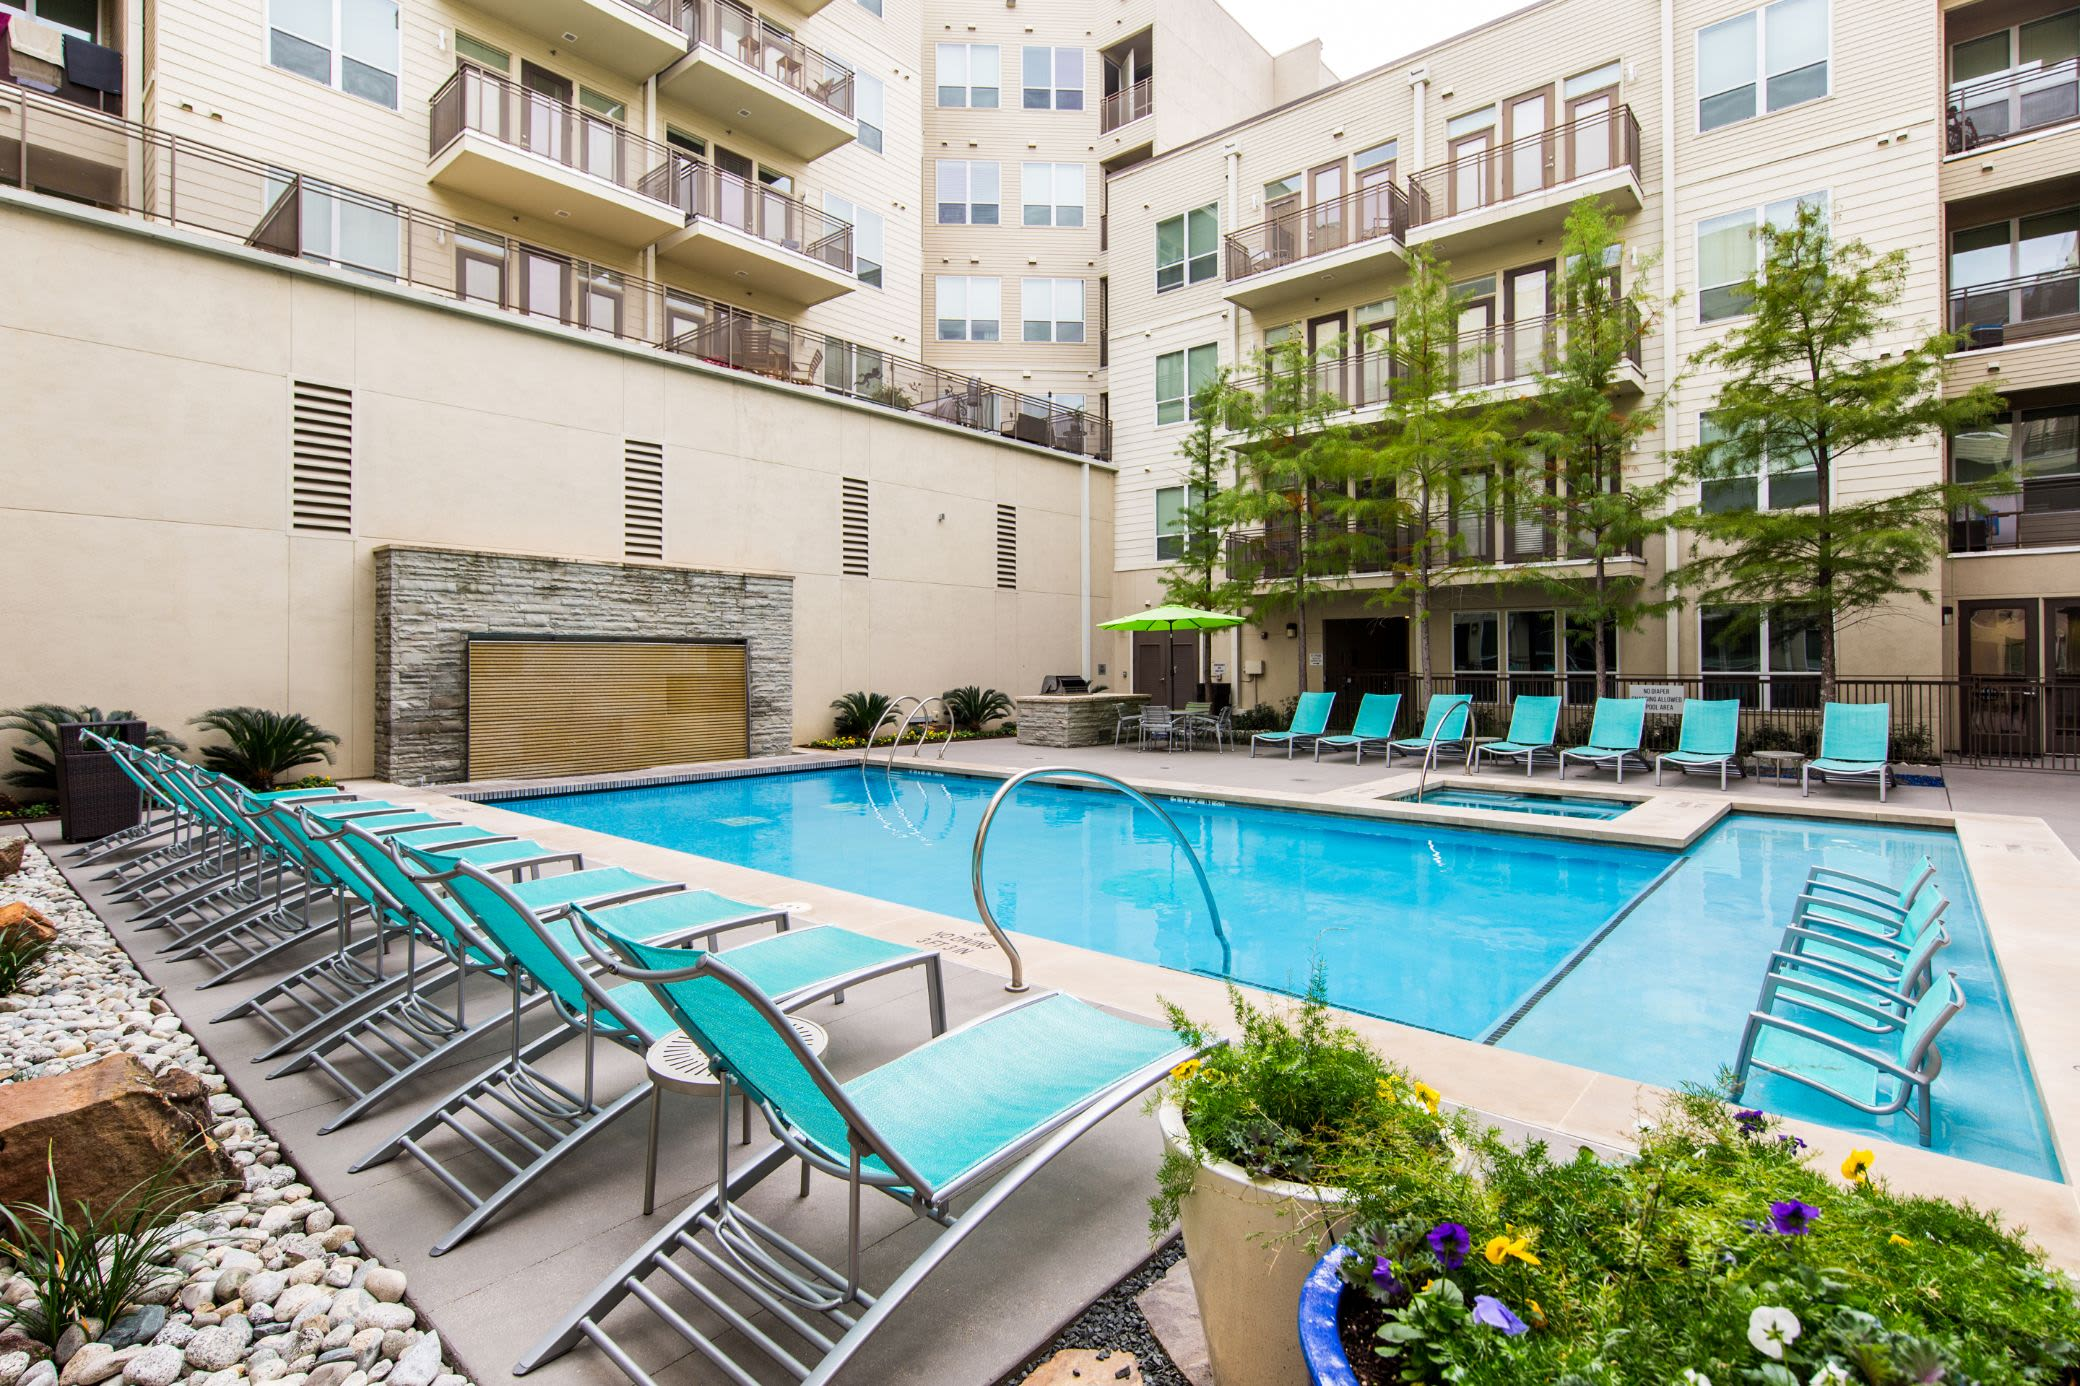 Sparkling swimming pool with lounge chairs on deck at The Marq on West 7th in Fort Worth, Texas